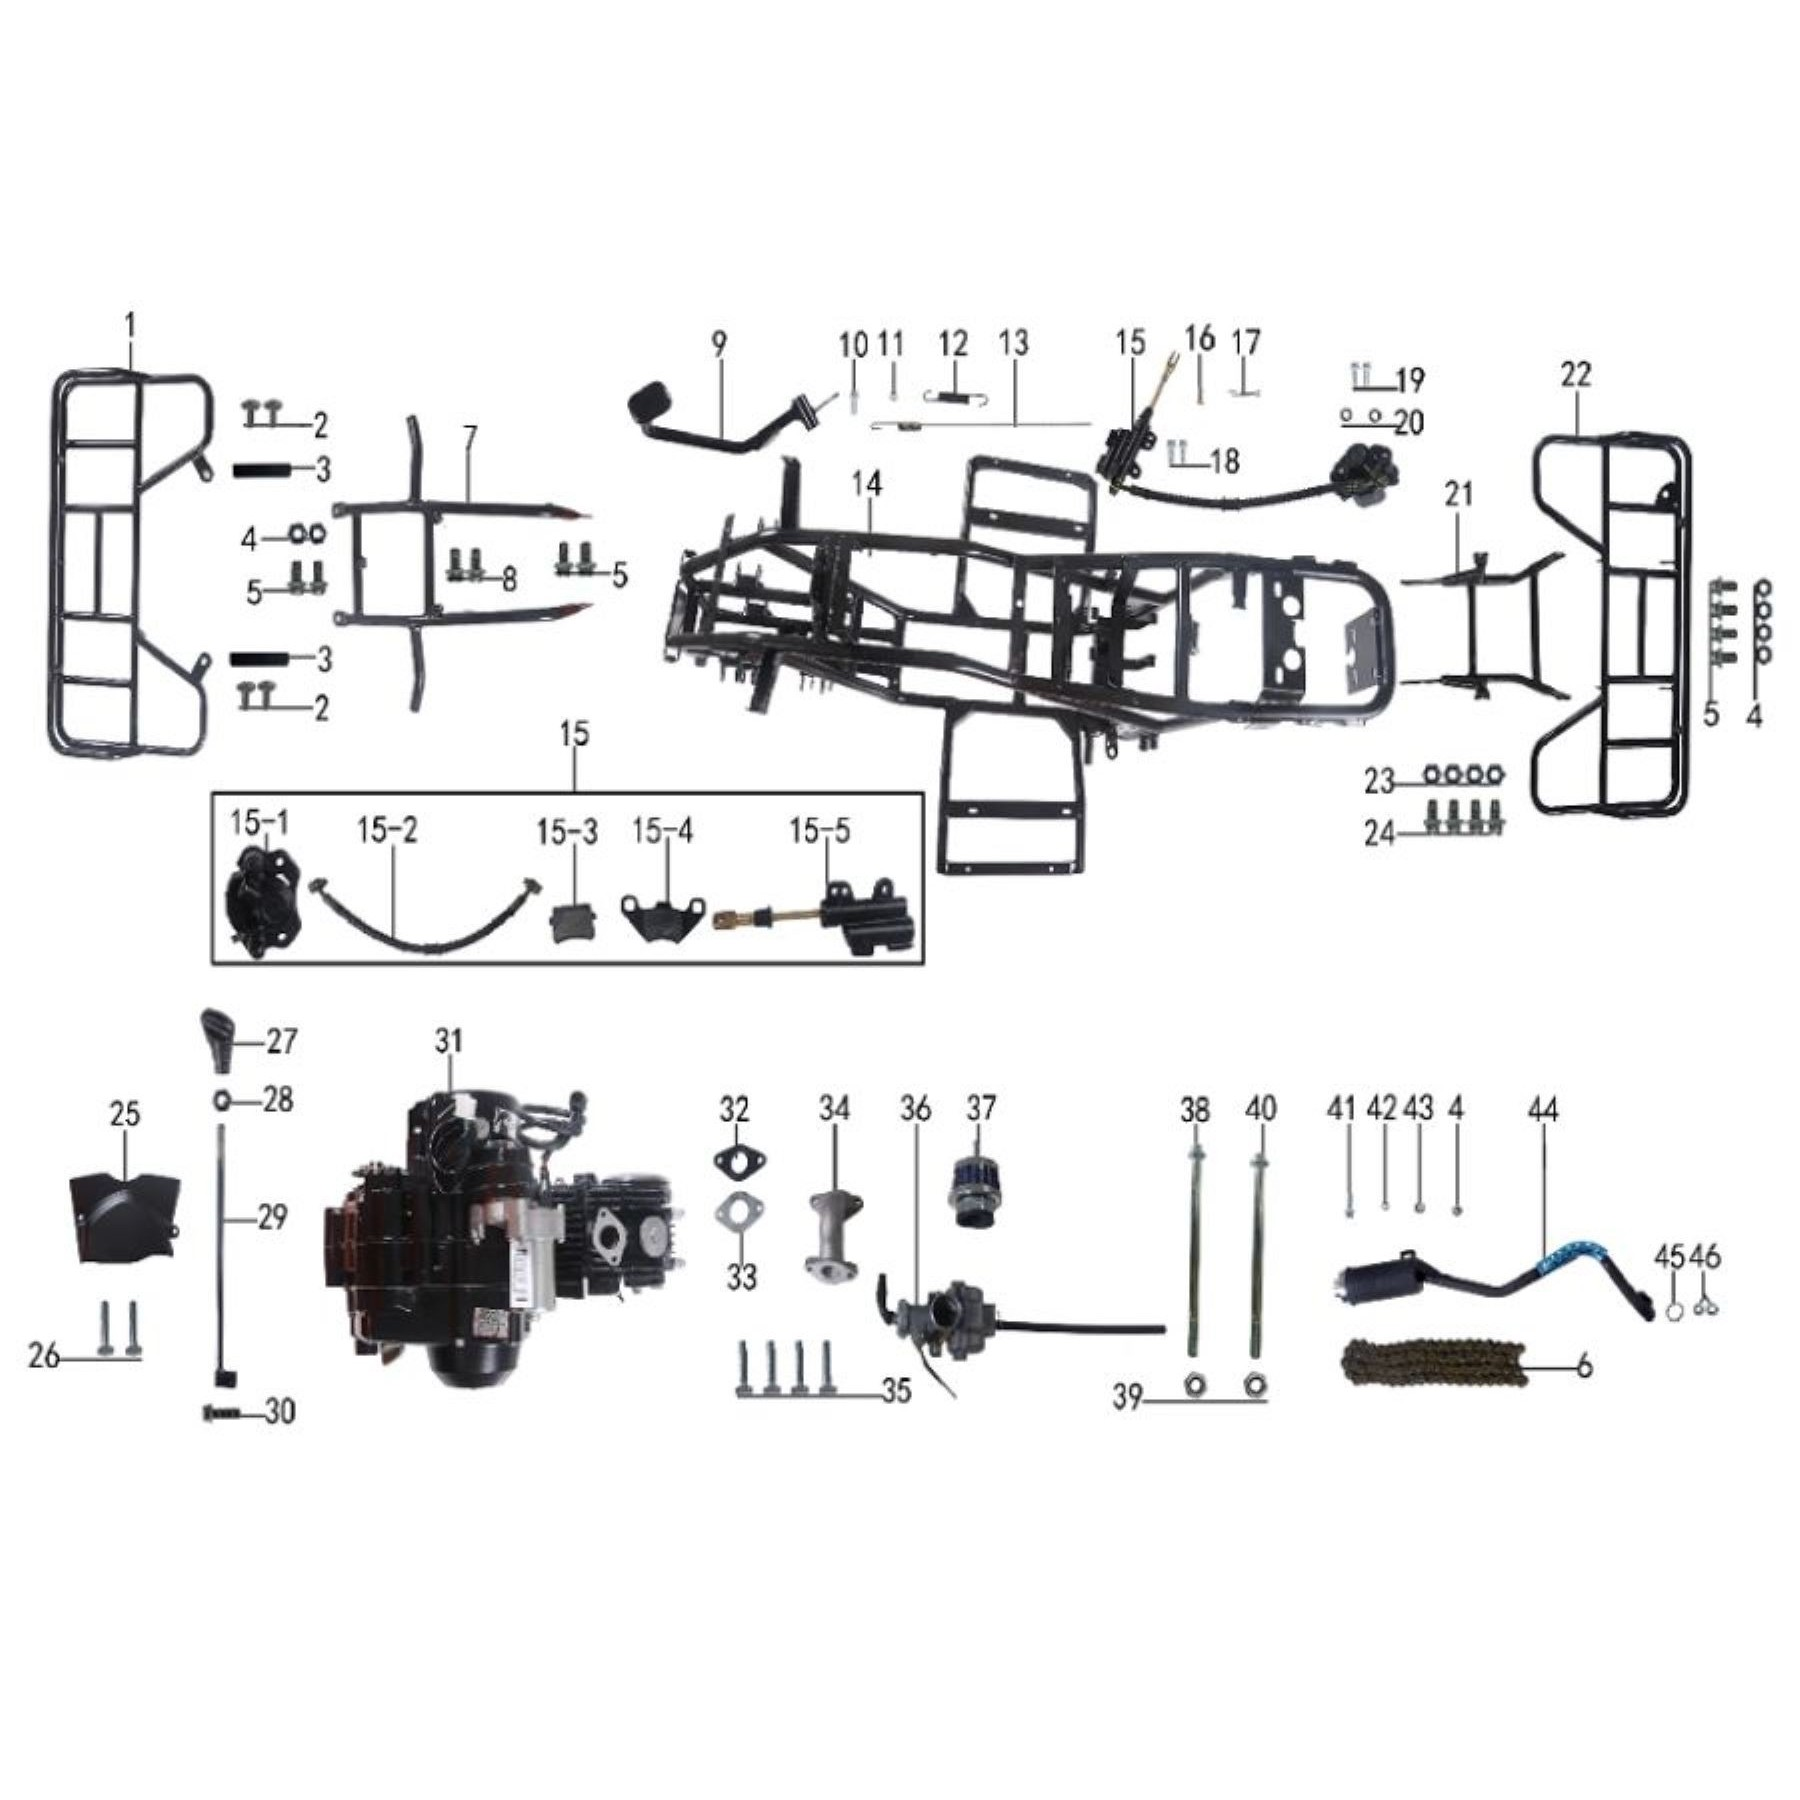 parts of frame ,engine and brake for atv taotao  t-force -vtt lachute